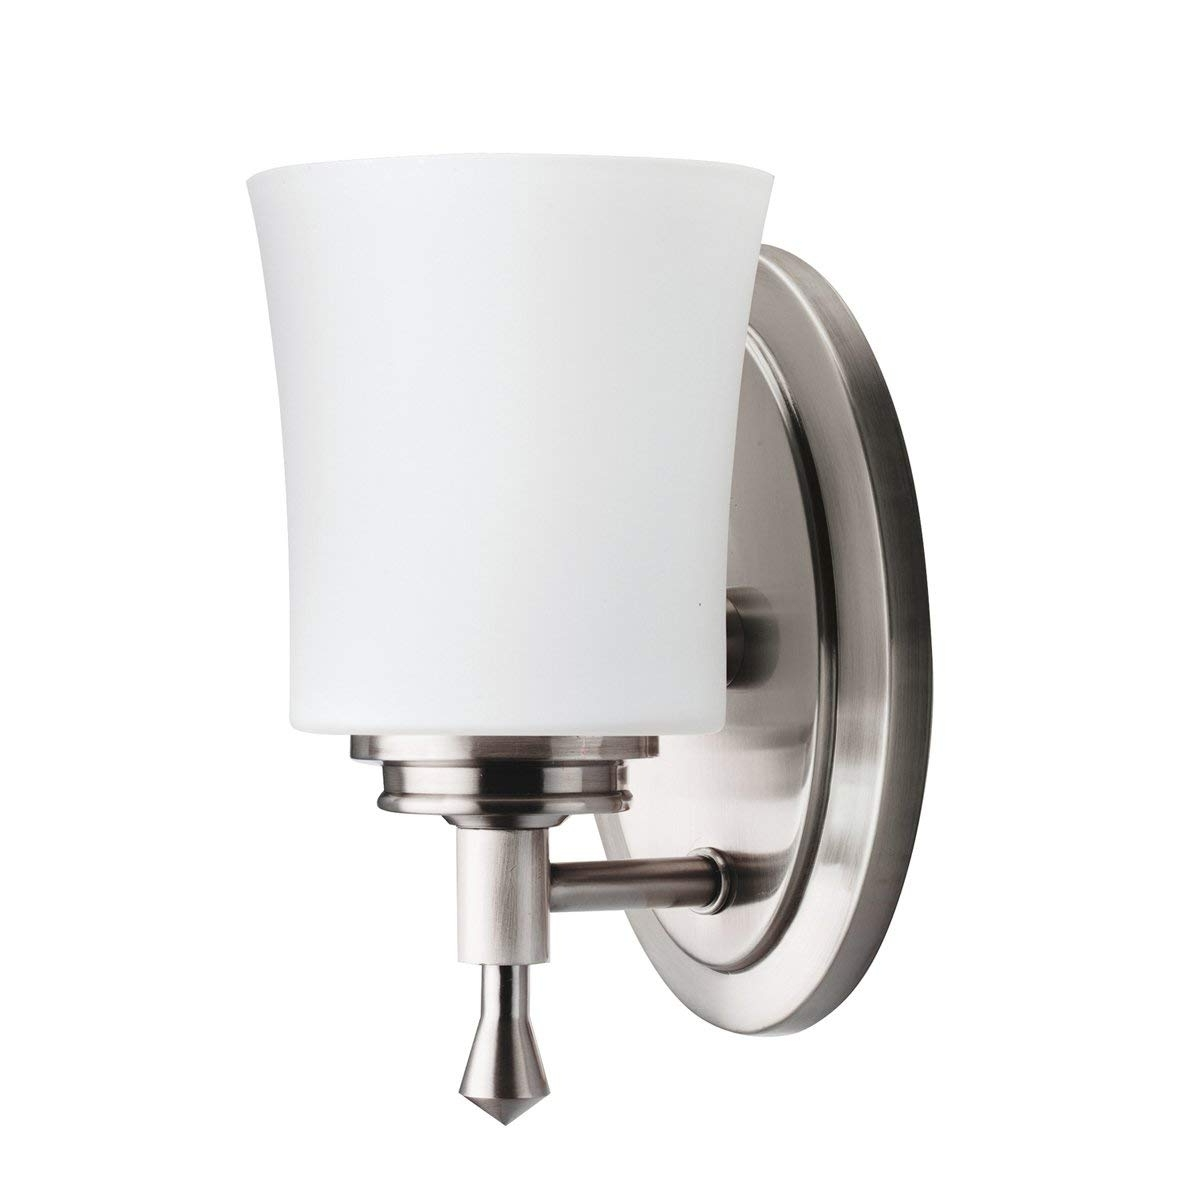 Outdoor Lanterns At Bunnings In Famous Kichler Wharton Wall Sconce Light Brushed Nickel Vanity Lighting (View 9 of 20)